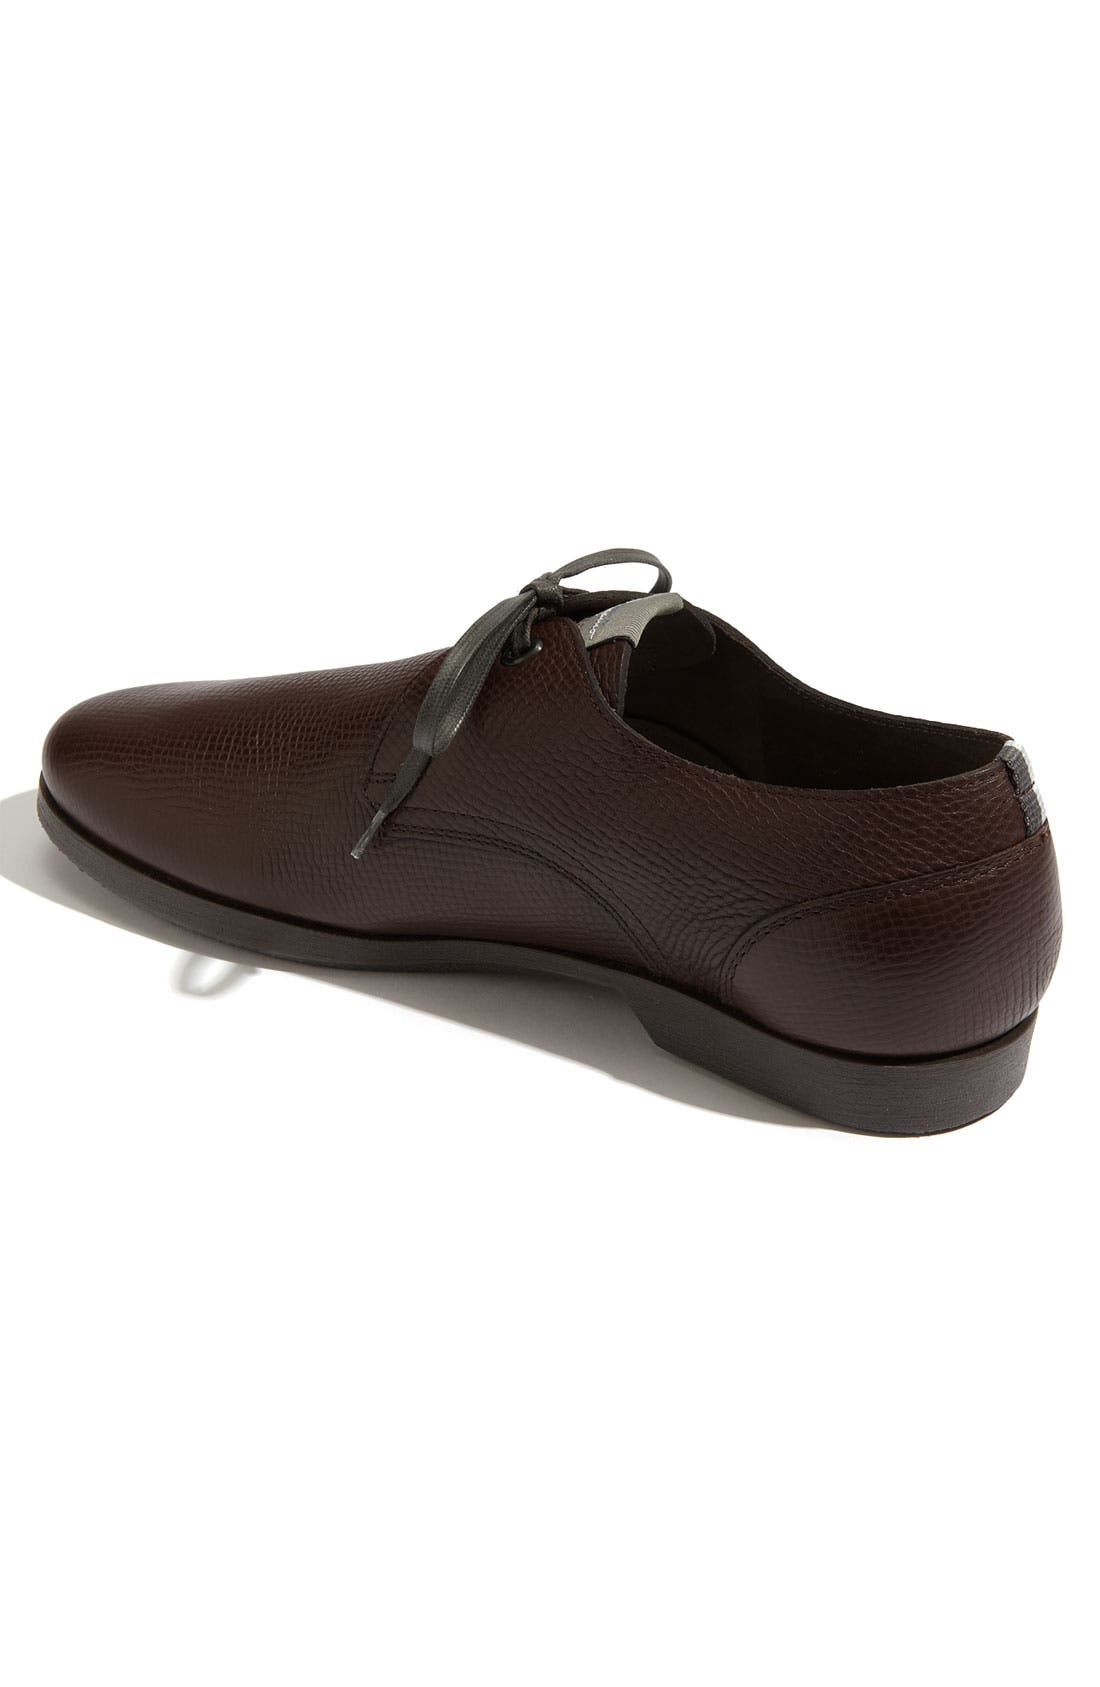 Alternate Image 2  - Salvatore Ferragamo 'Motion' Oxford